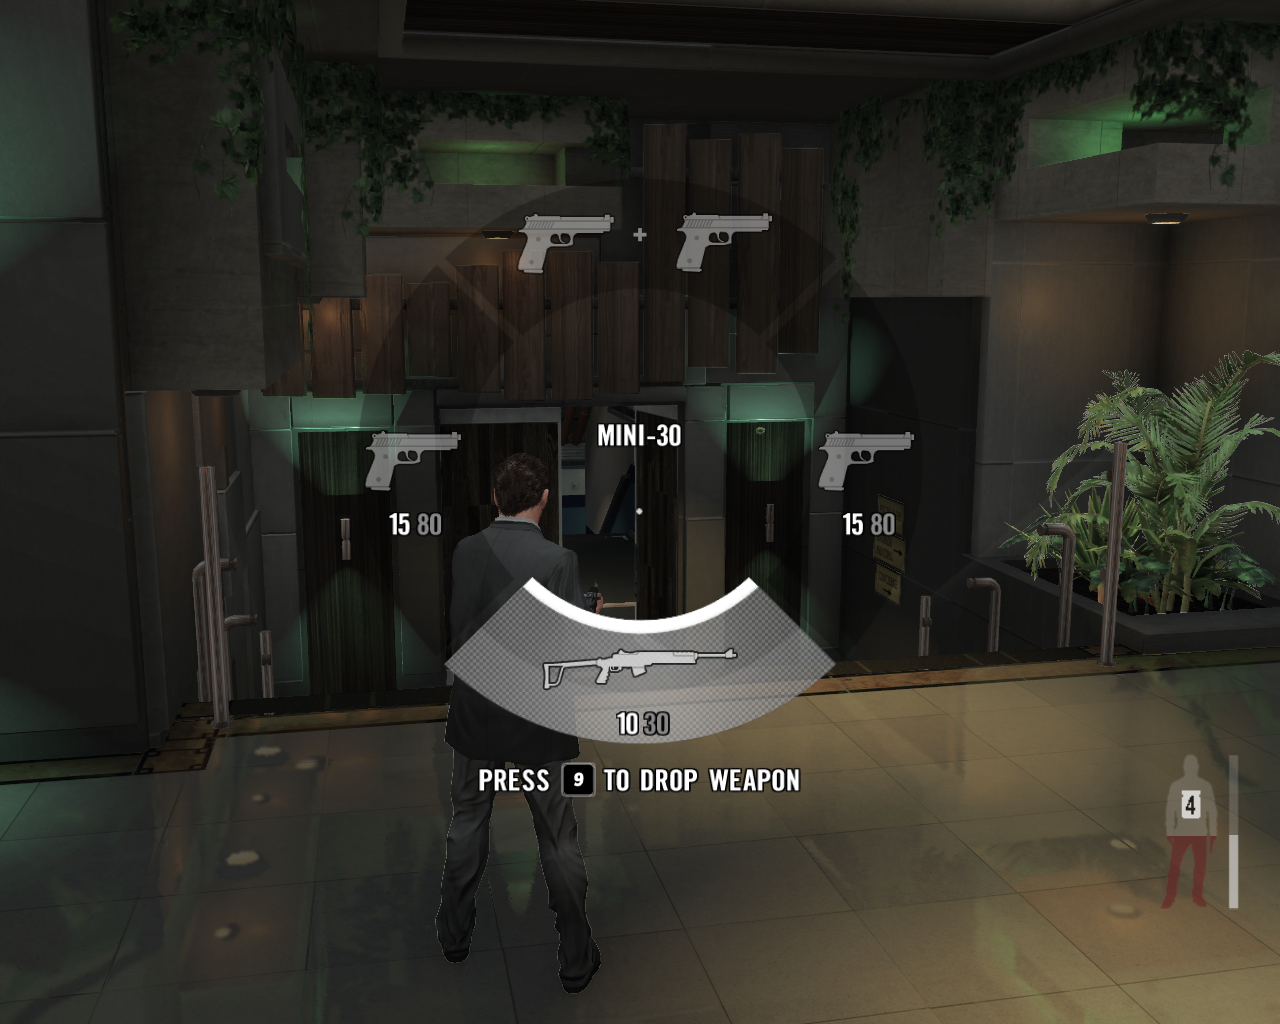 Max Payne 3 Windows Weapon select menu. If you dual-wield pistols (or other small automatic arms), you'll have to drop any heavier weapon you're carrying